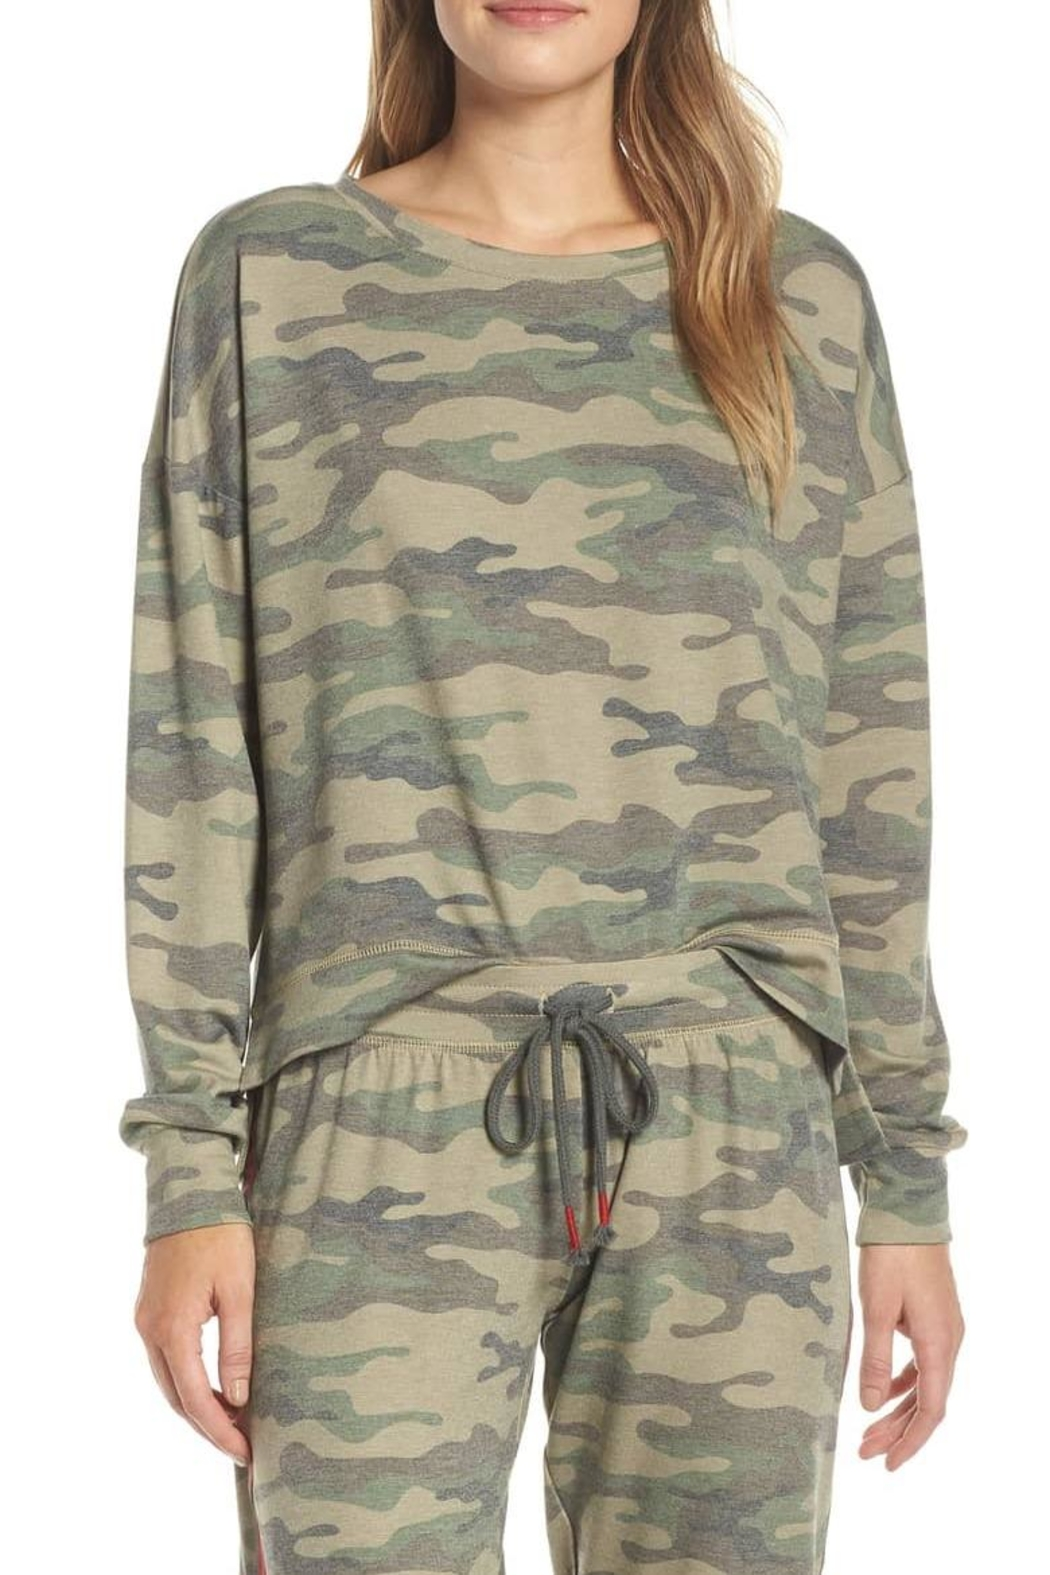 PJ Salvage Camo Pj Top - Front Cropped Image